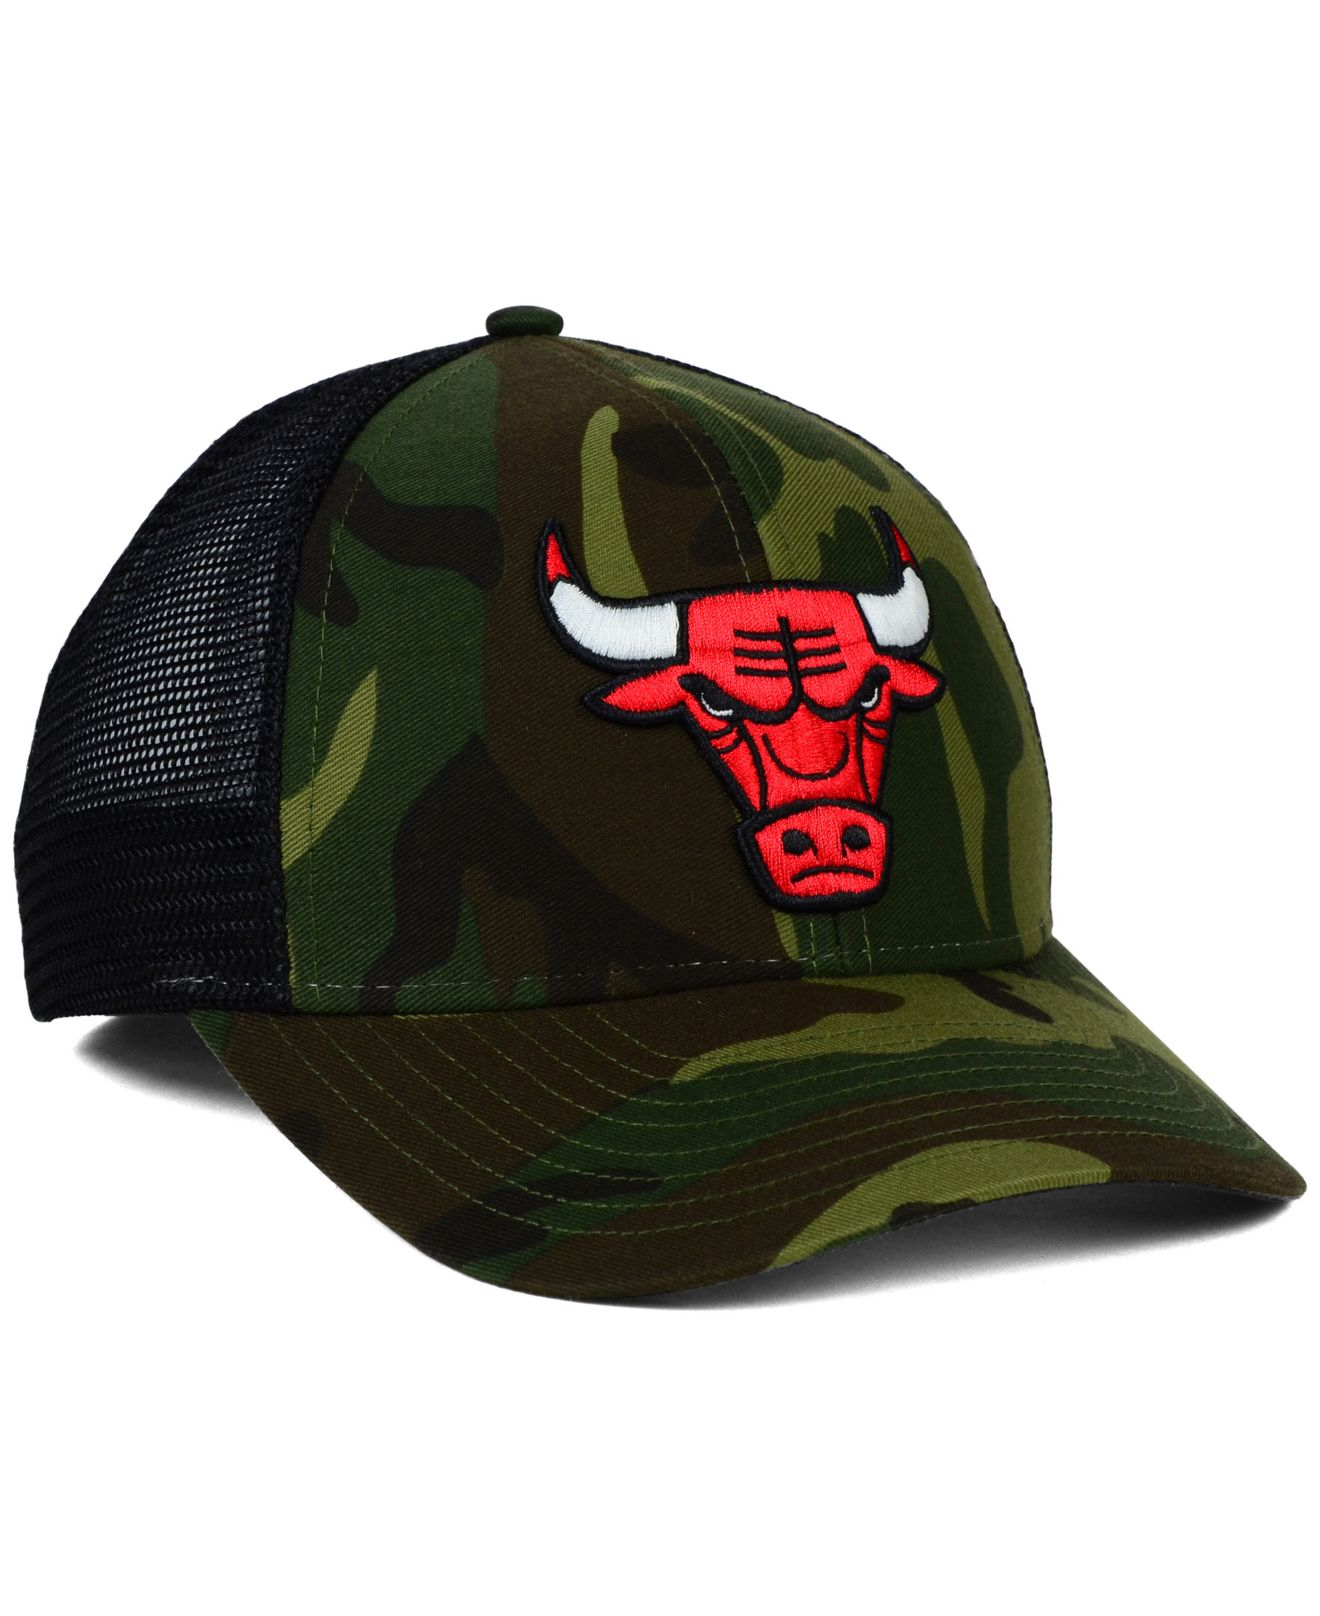 45a22232f01b8 ... new arrivals lyst adidas chicago bulls camo trucker cap in green for men  0c267 606da